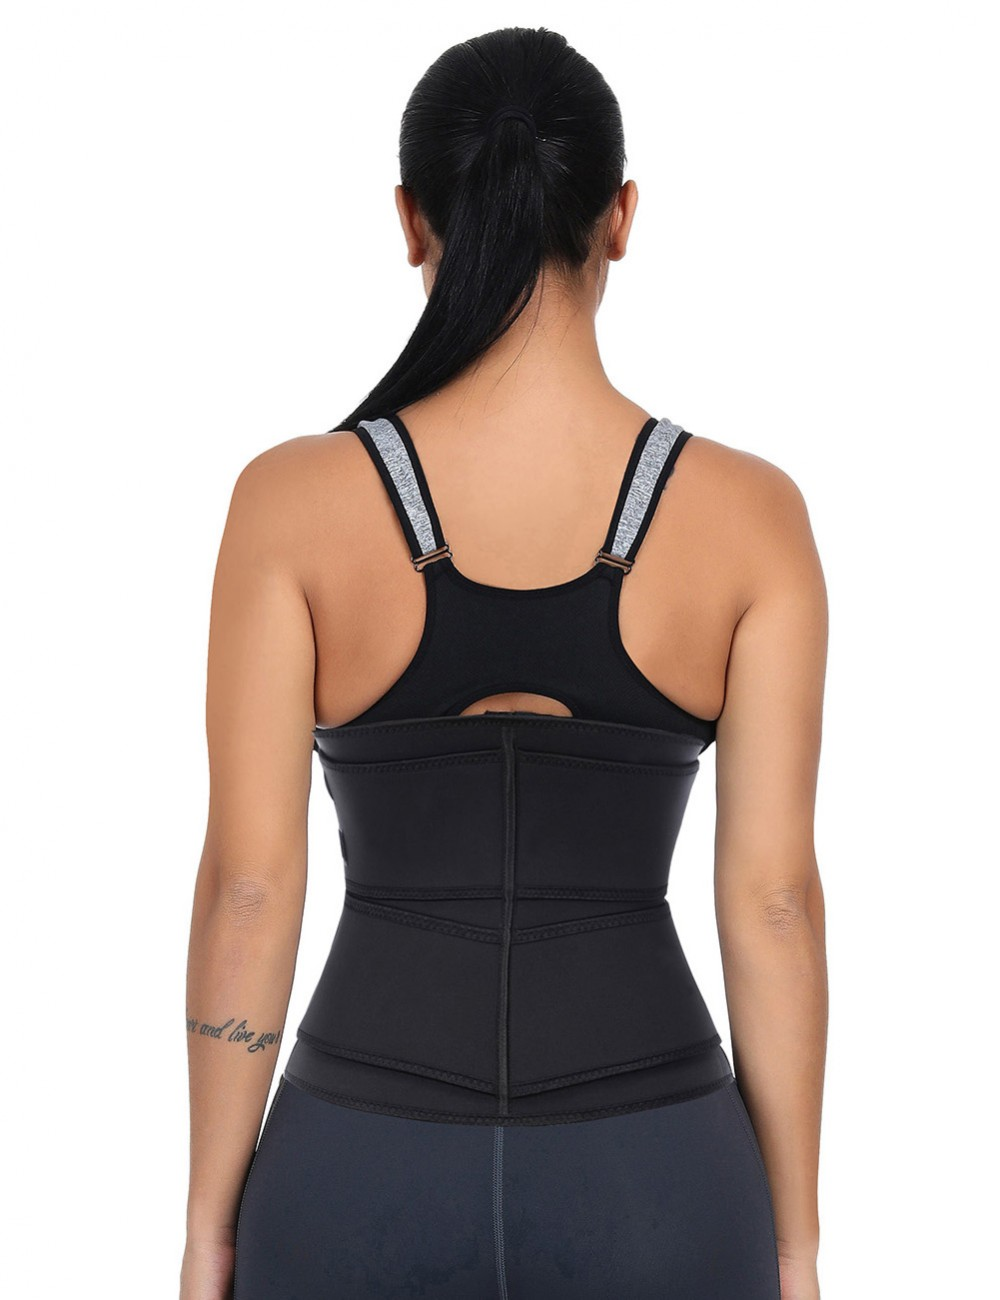 Double Belt Black Big Size Latex Waist Trainer For Loss Weight